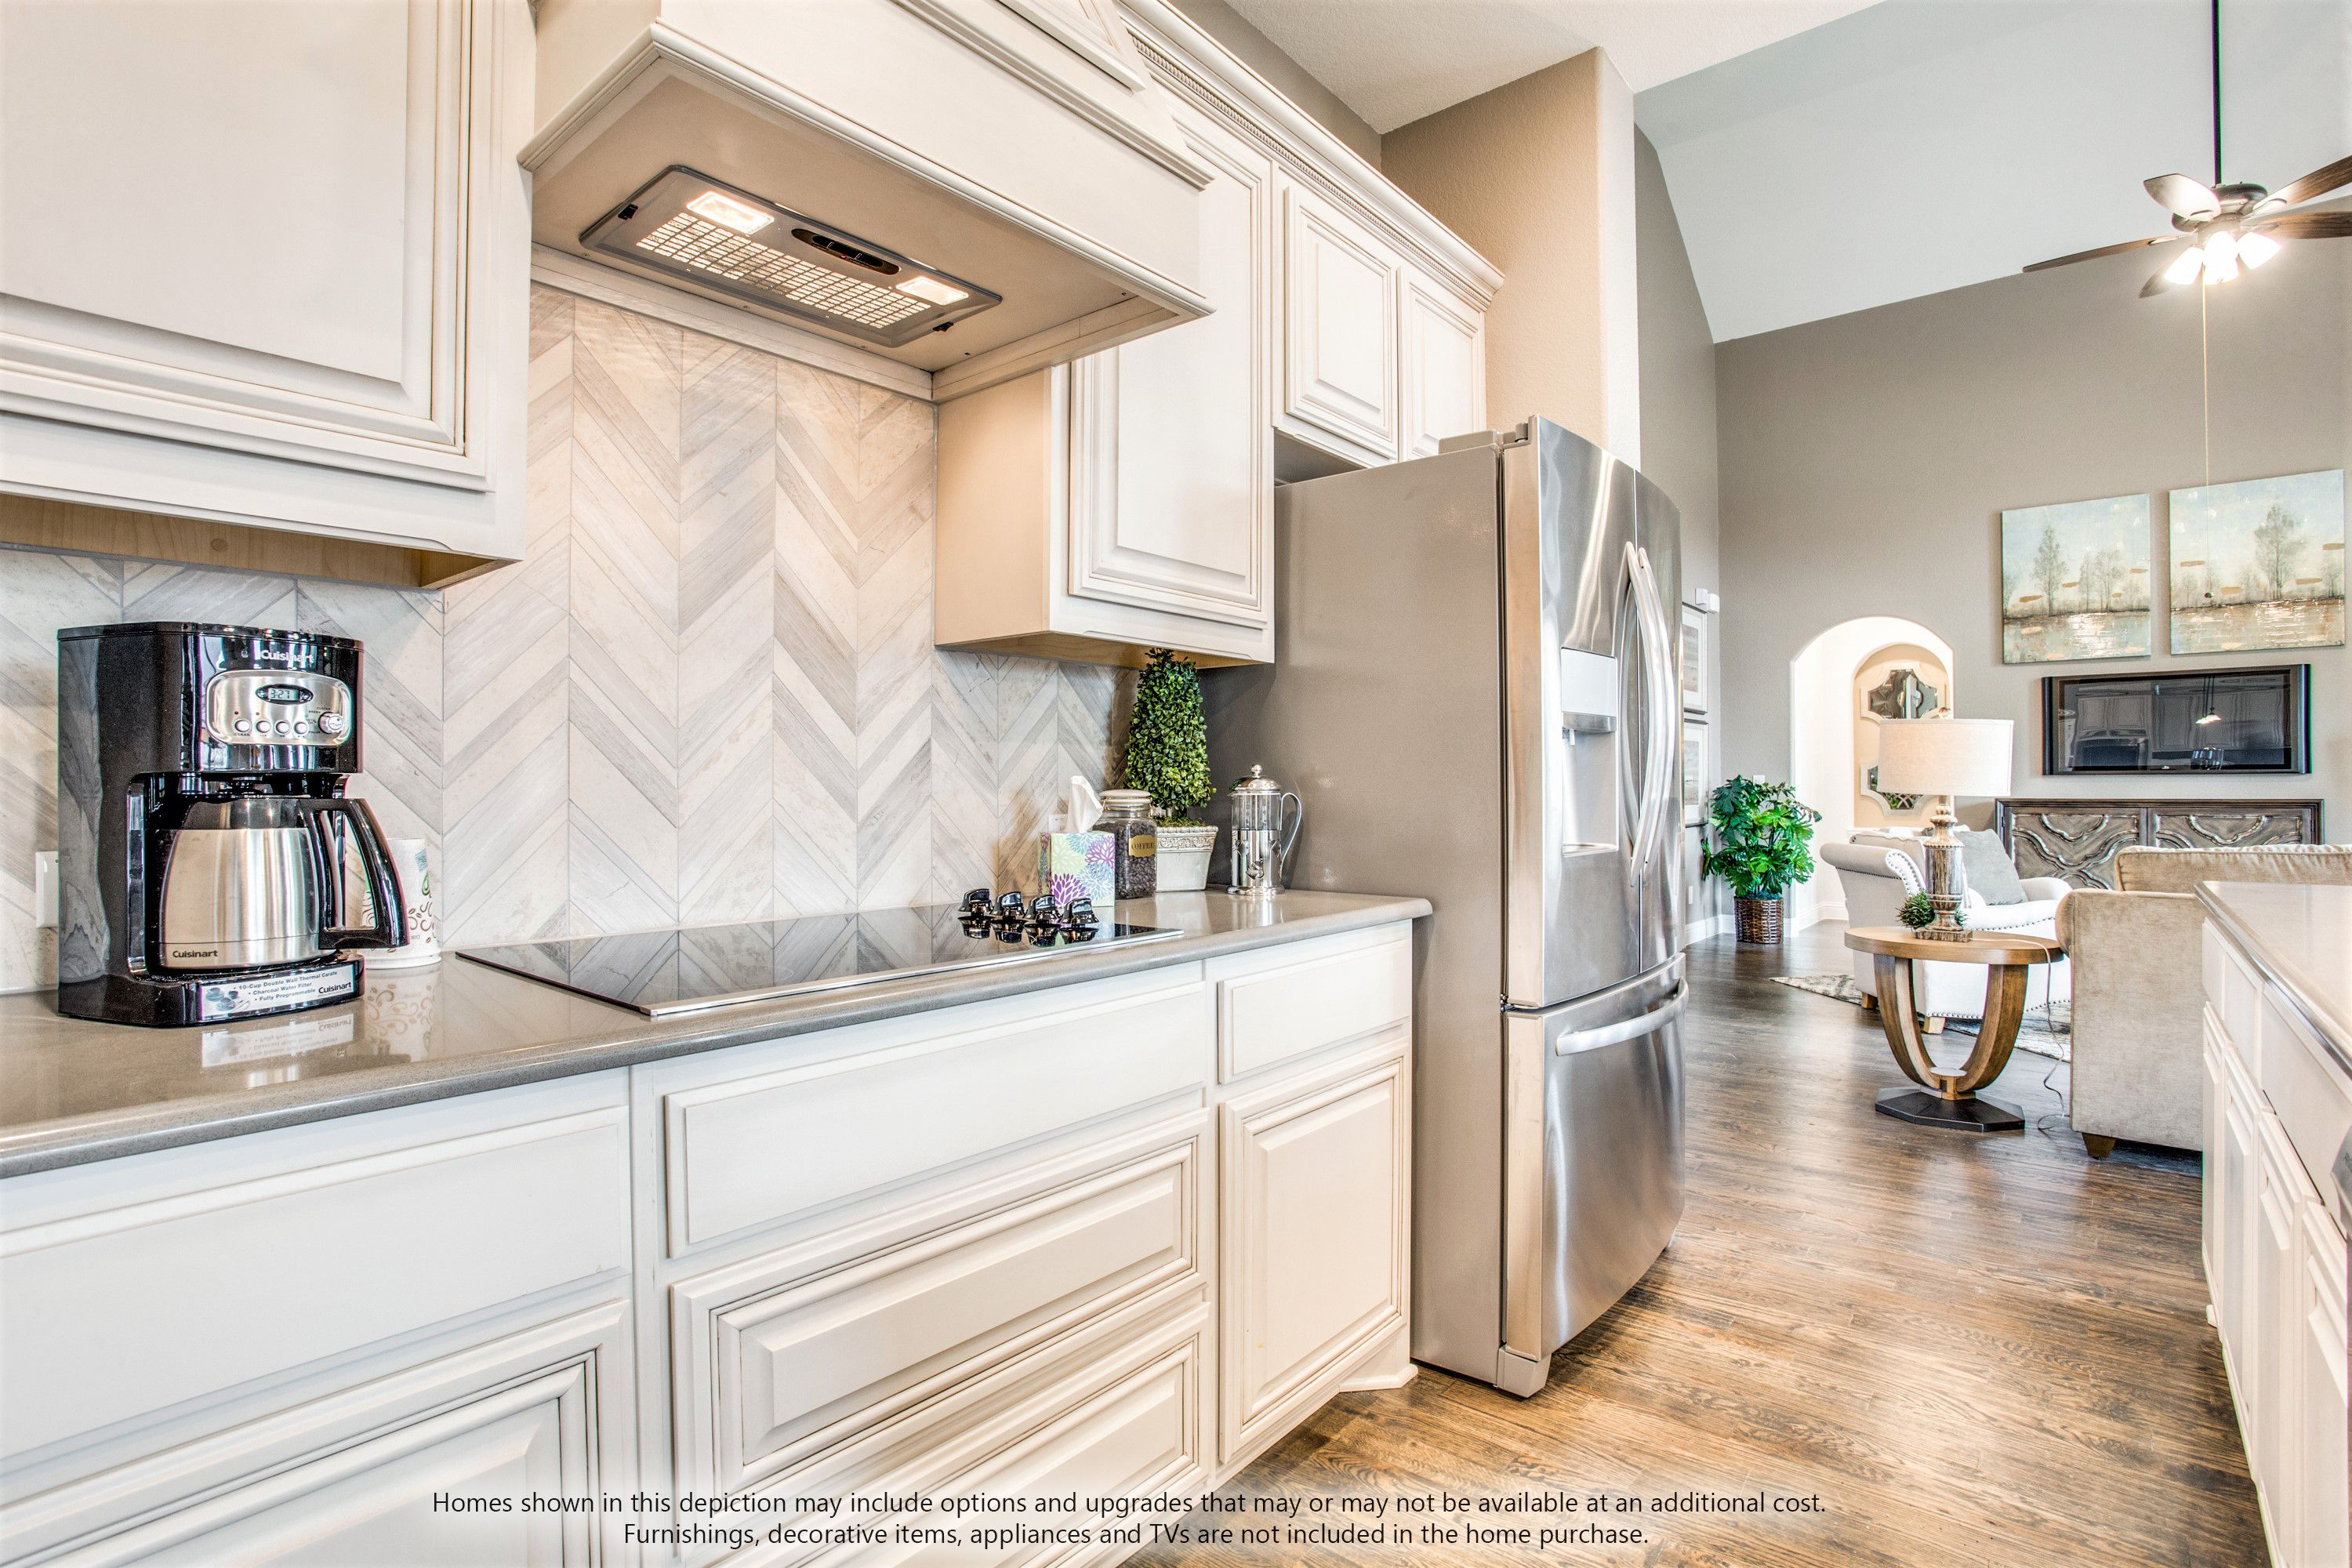 Kitchen featured in the Primrose III By Bloomfield Homes in Fort Worth, TX